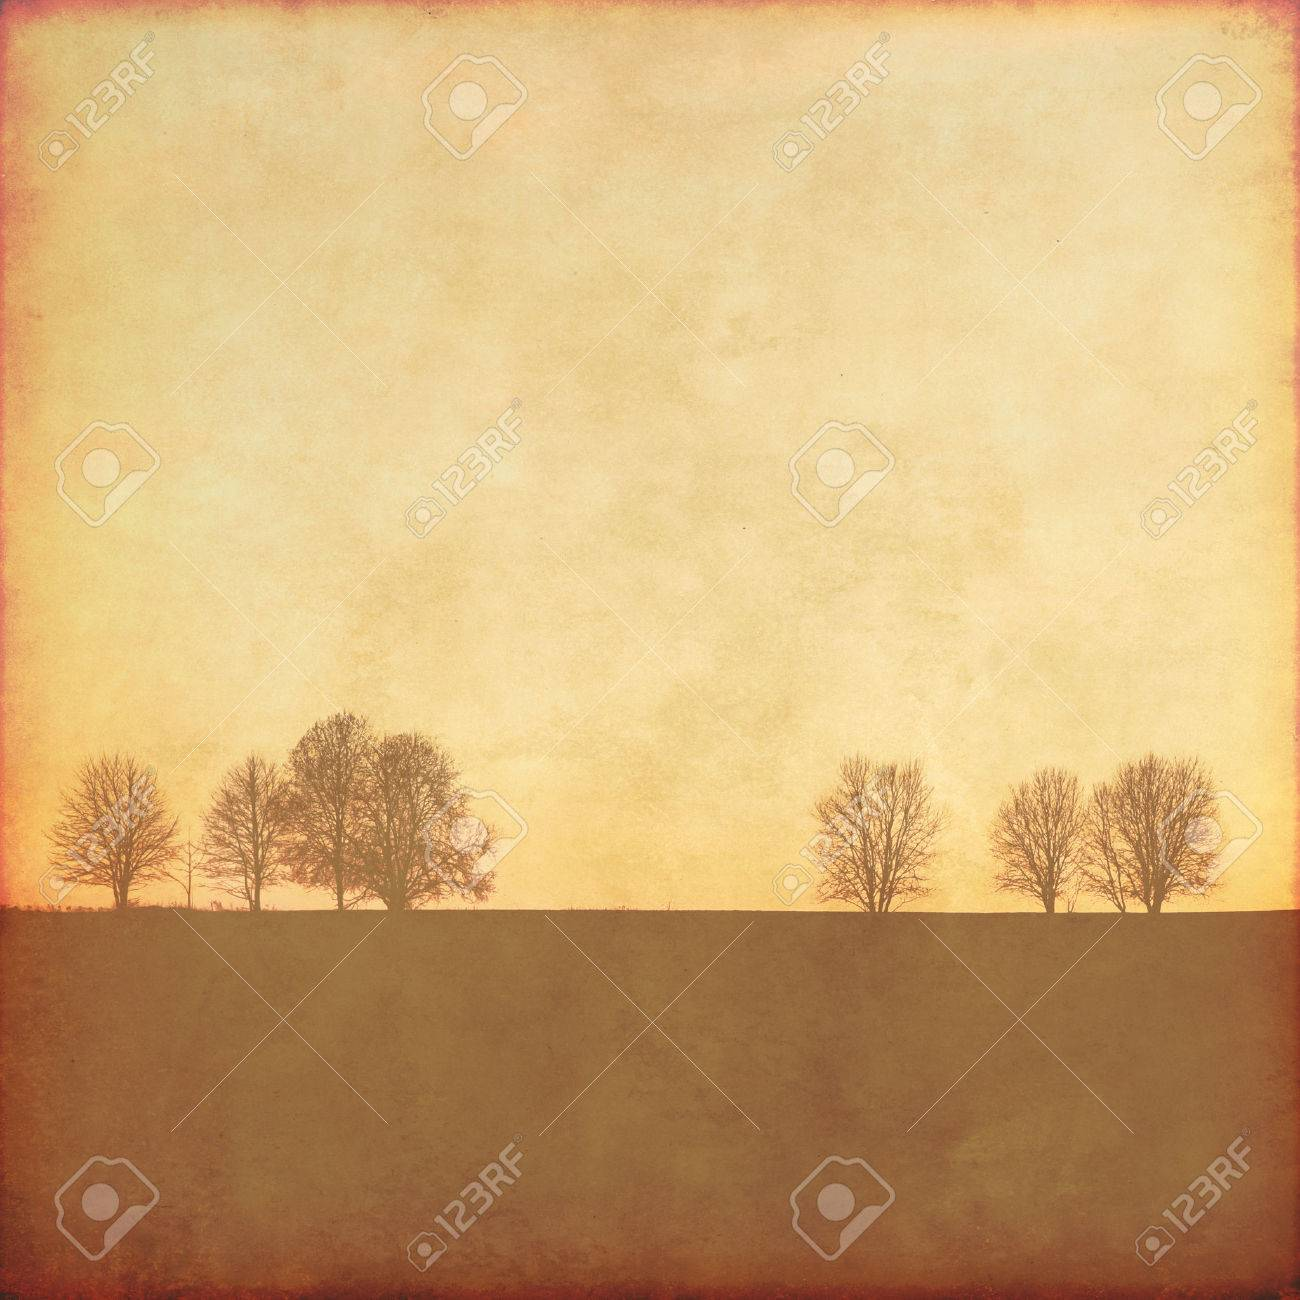 Grunge background with trees. Stock Photo - 49605434